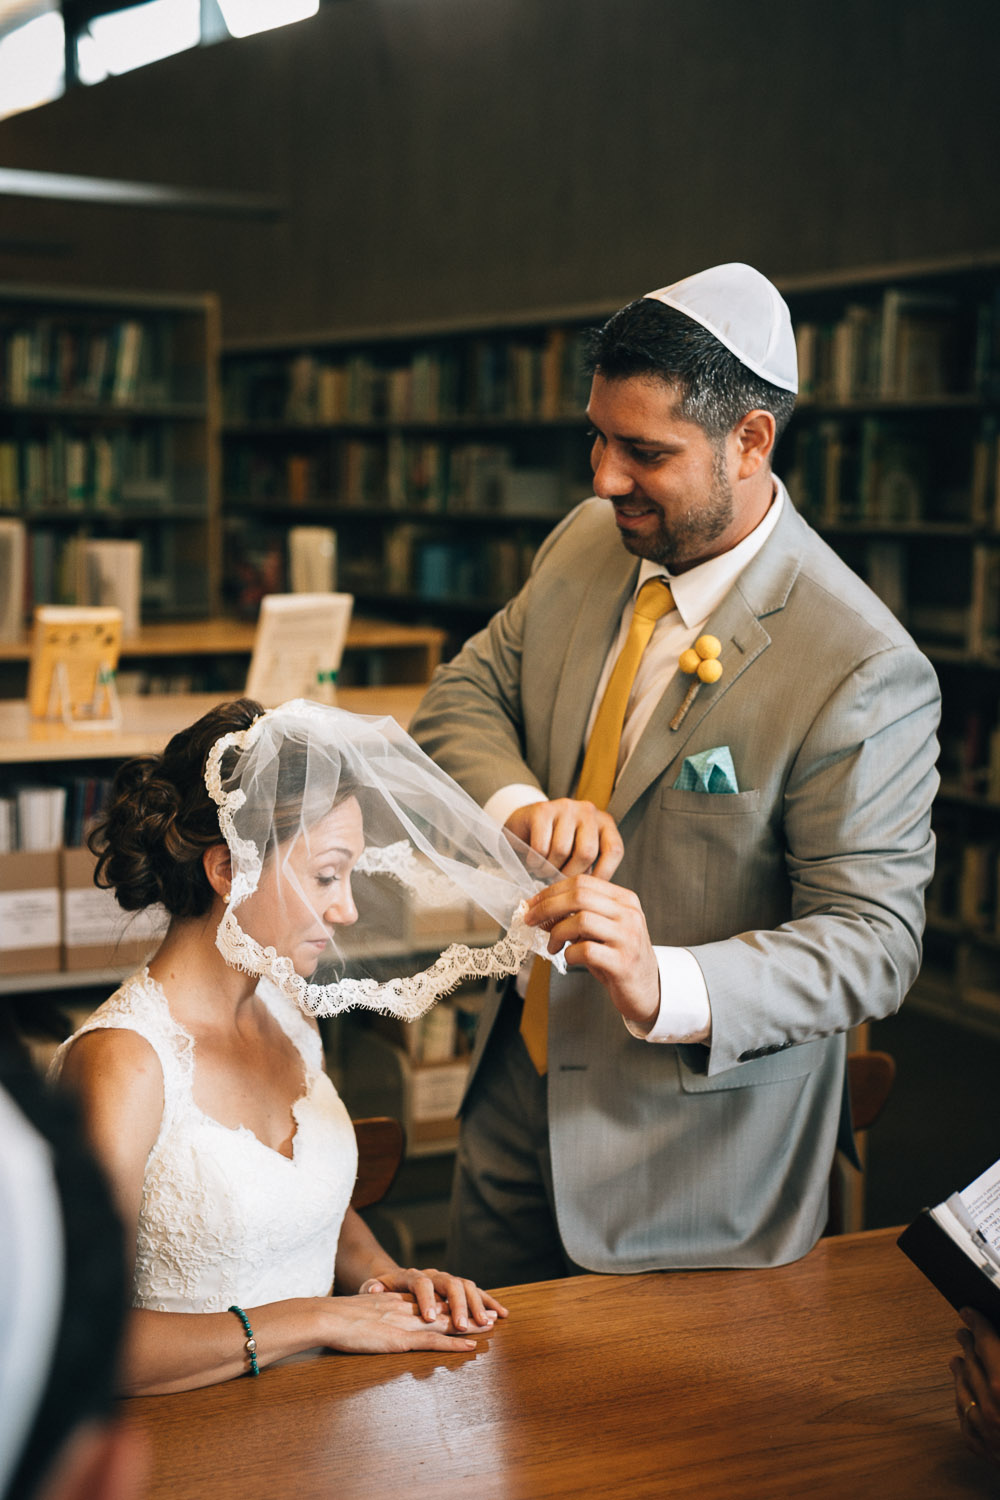 vancouver badeken jewish wedding ceremony photographer noyo creative